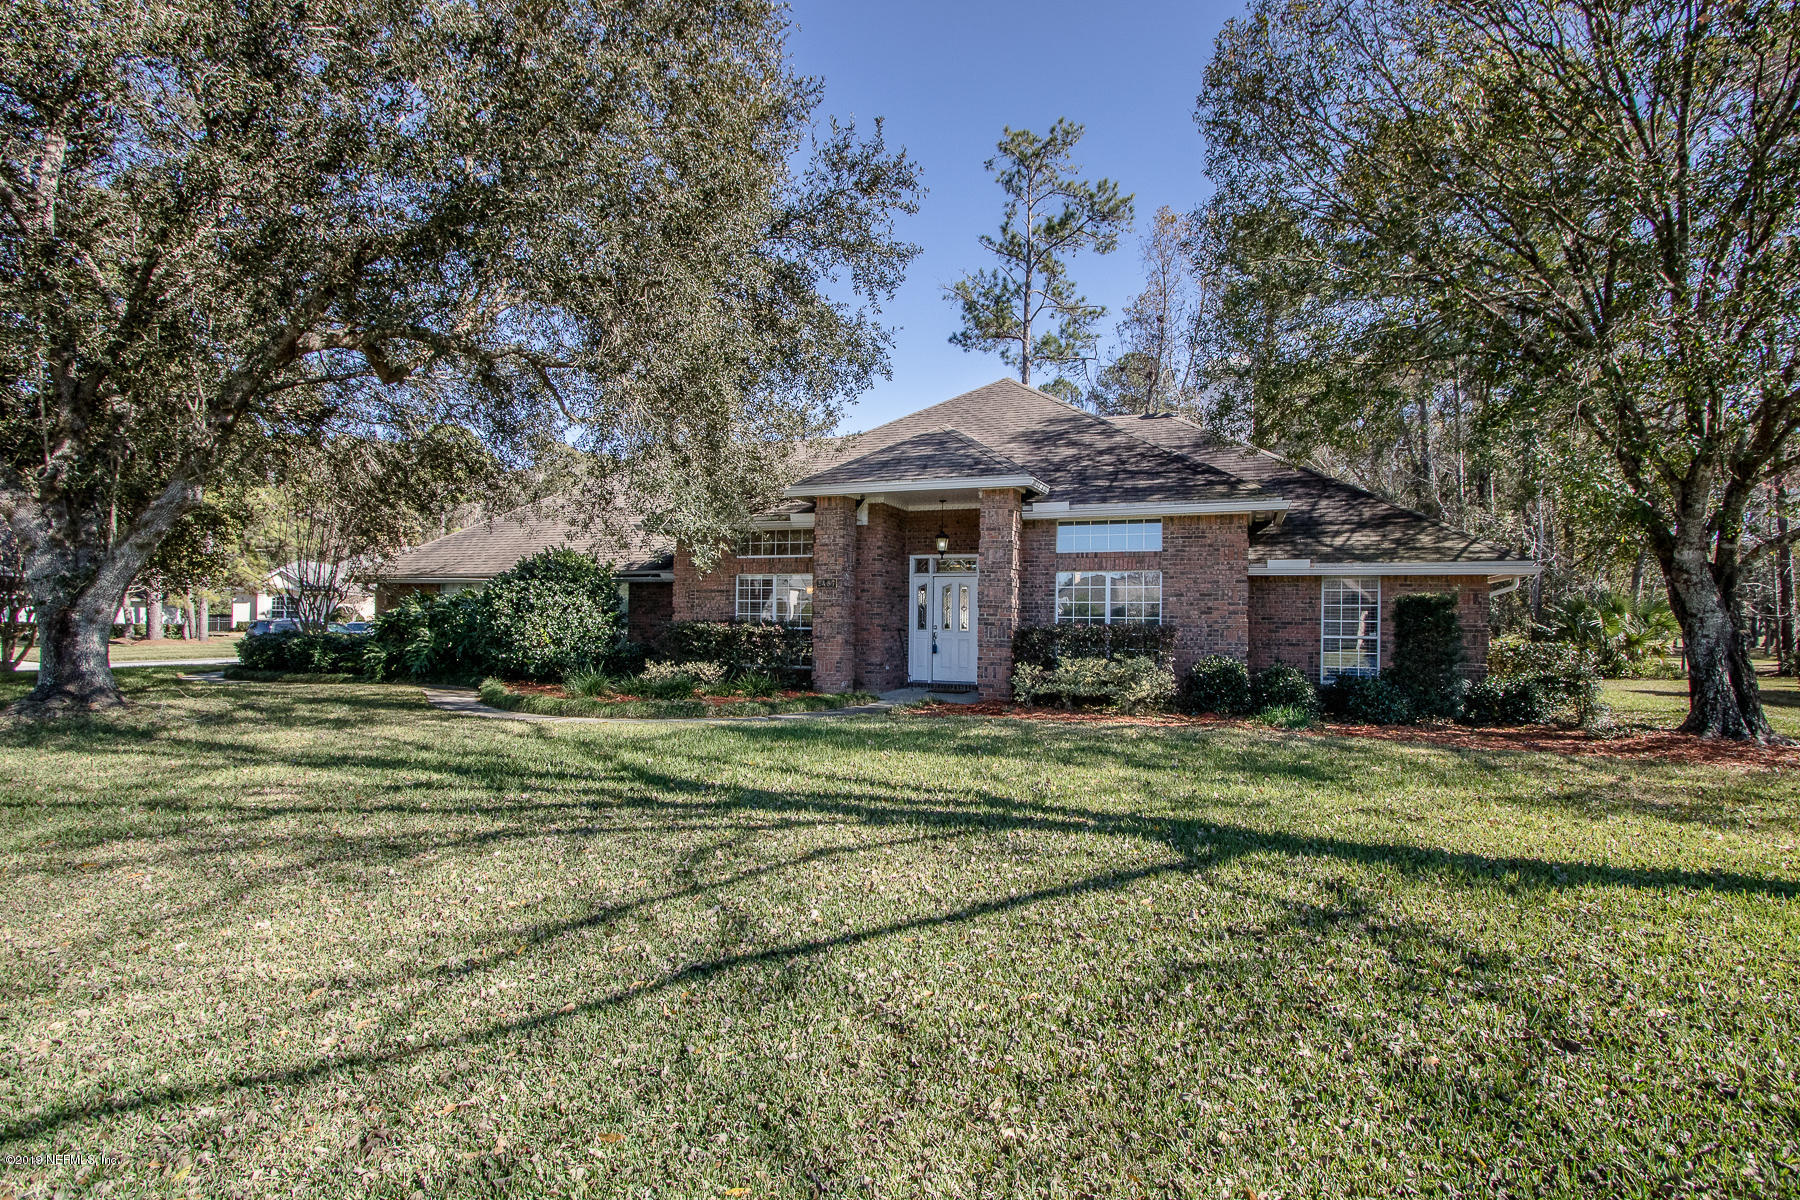 2487 COUNTRY CLUB, ORANGE PARK, FLORIDA 32073, 4 Bedrooms Bedrooms, ,2 BathroomsBathrooms,Residential - single family,For sale,COUNTRY CLUB,974903